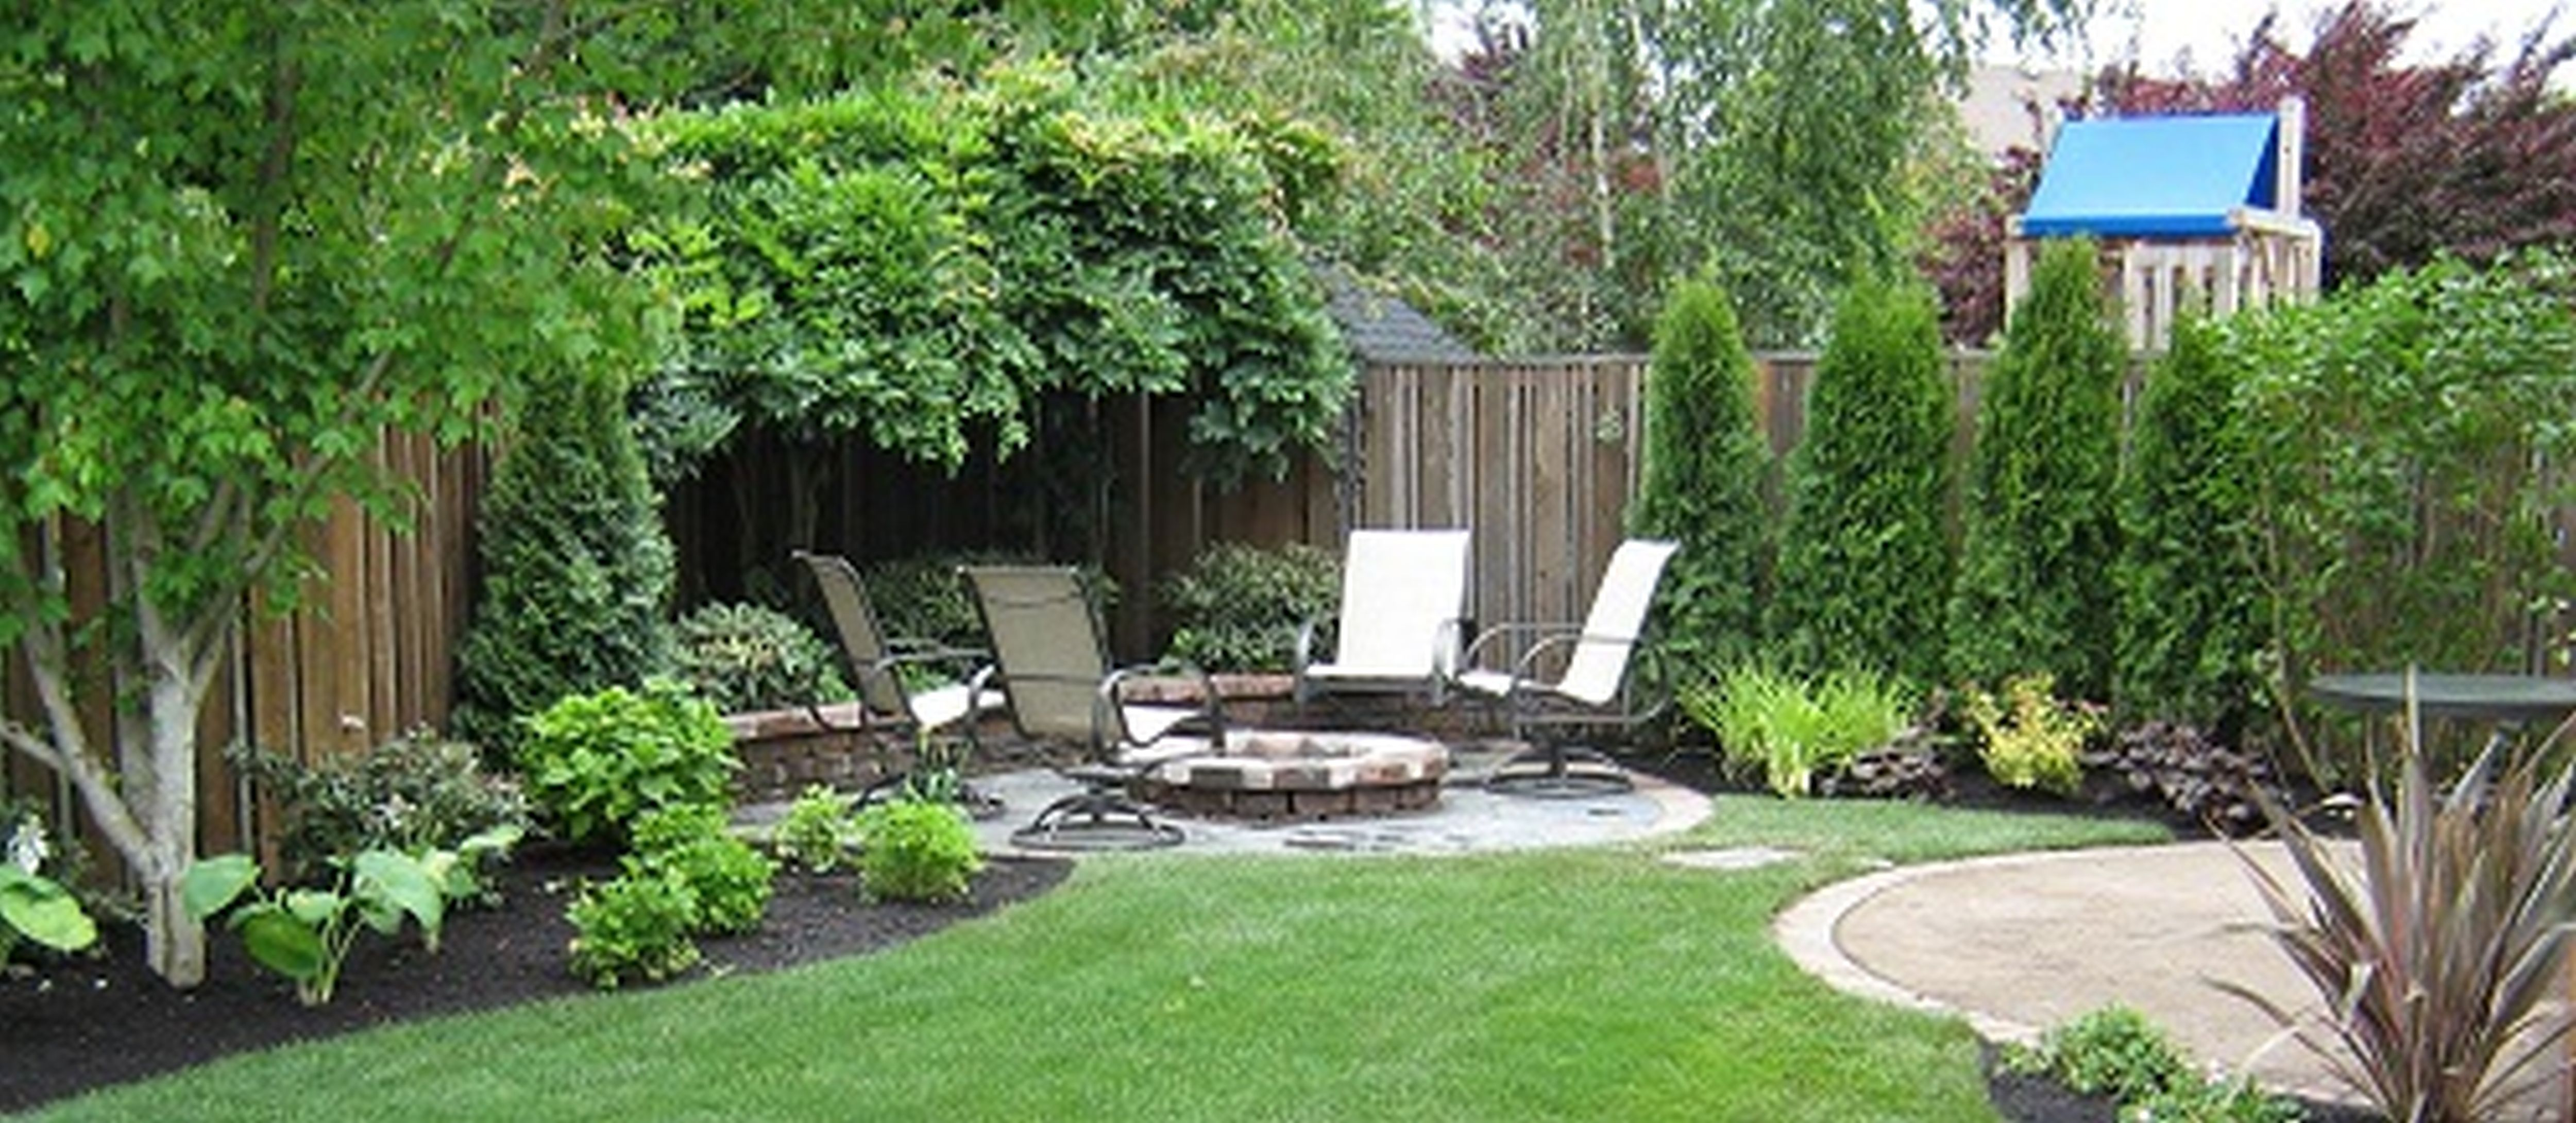 Landscape Design Backyard Features Pleasing Interior Exterior with regard to 10 Clever Concepts of How to Make Garden Ideas For Small Backyards